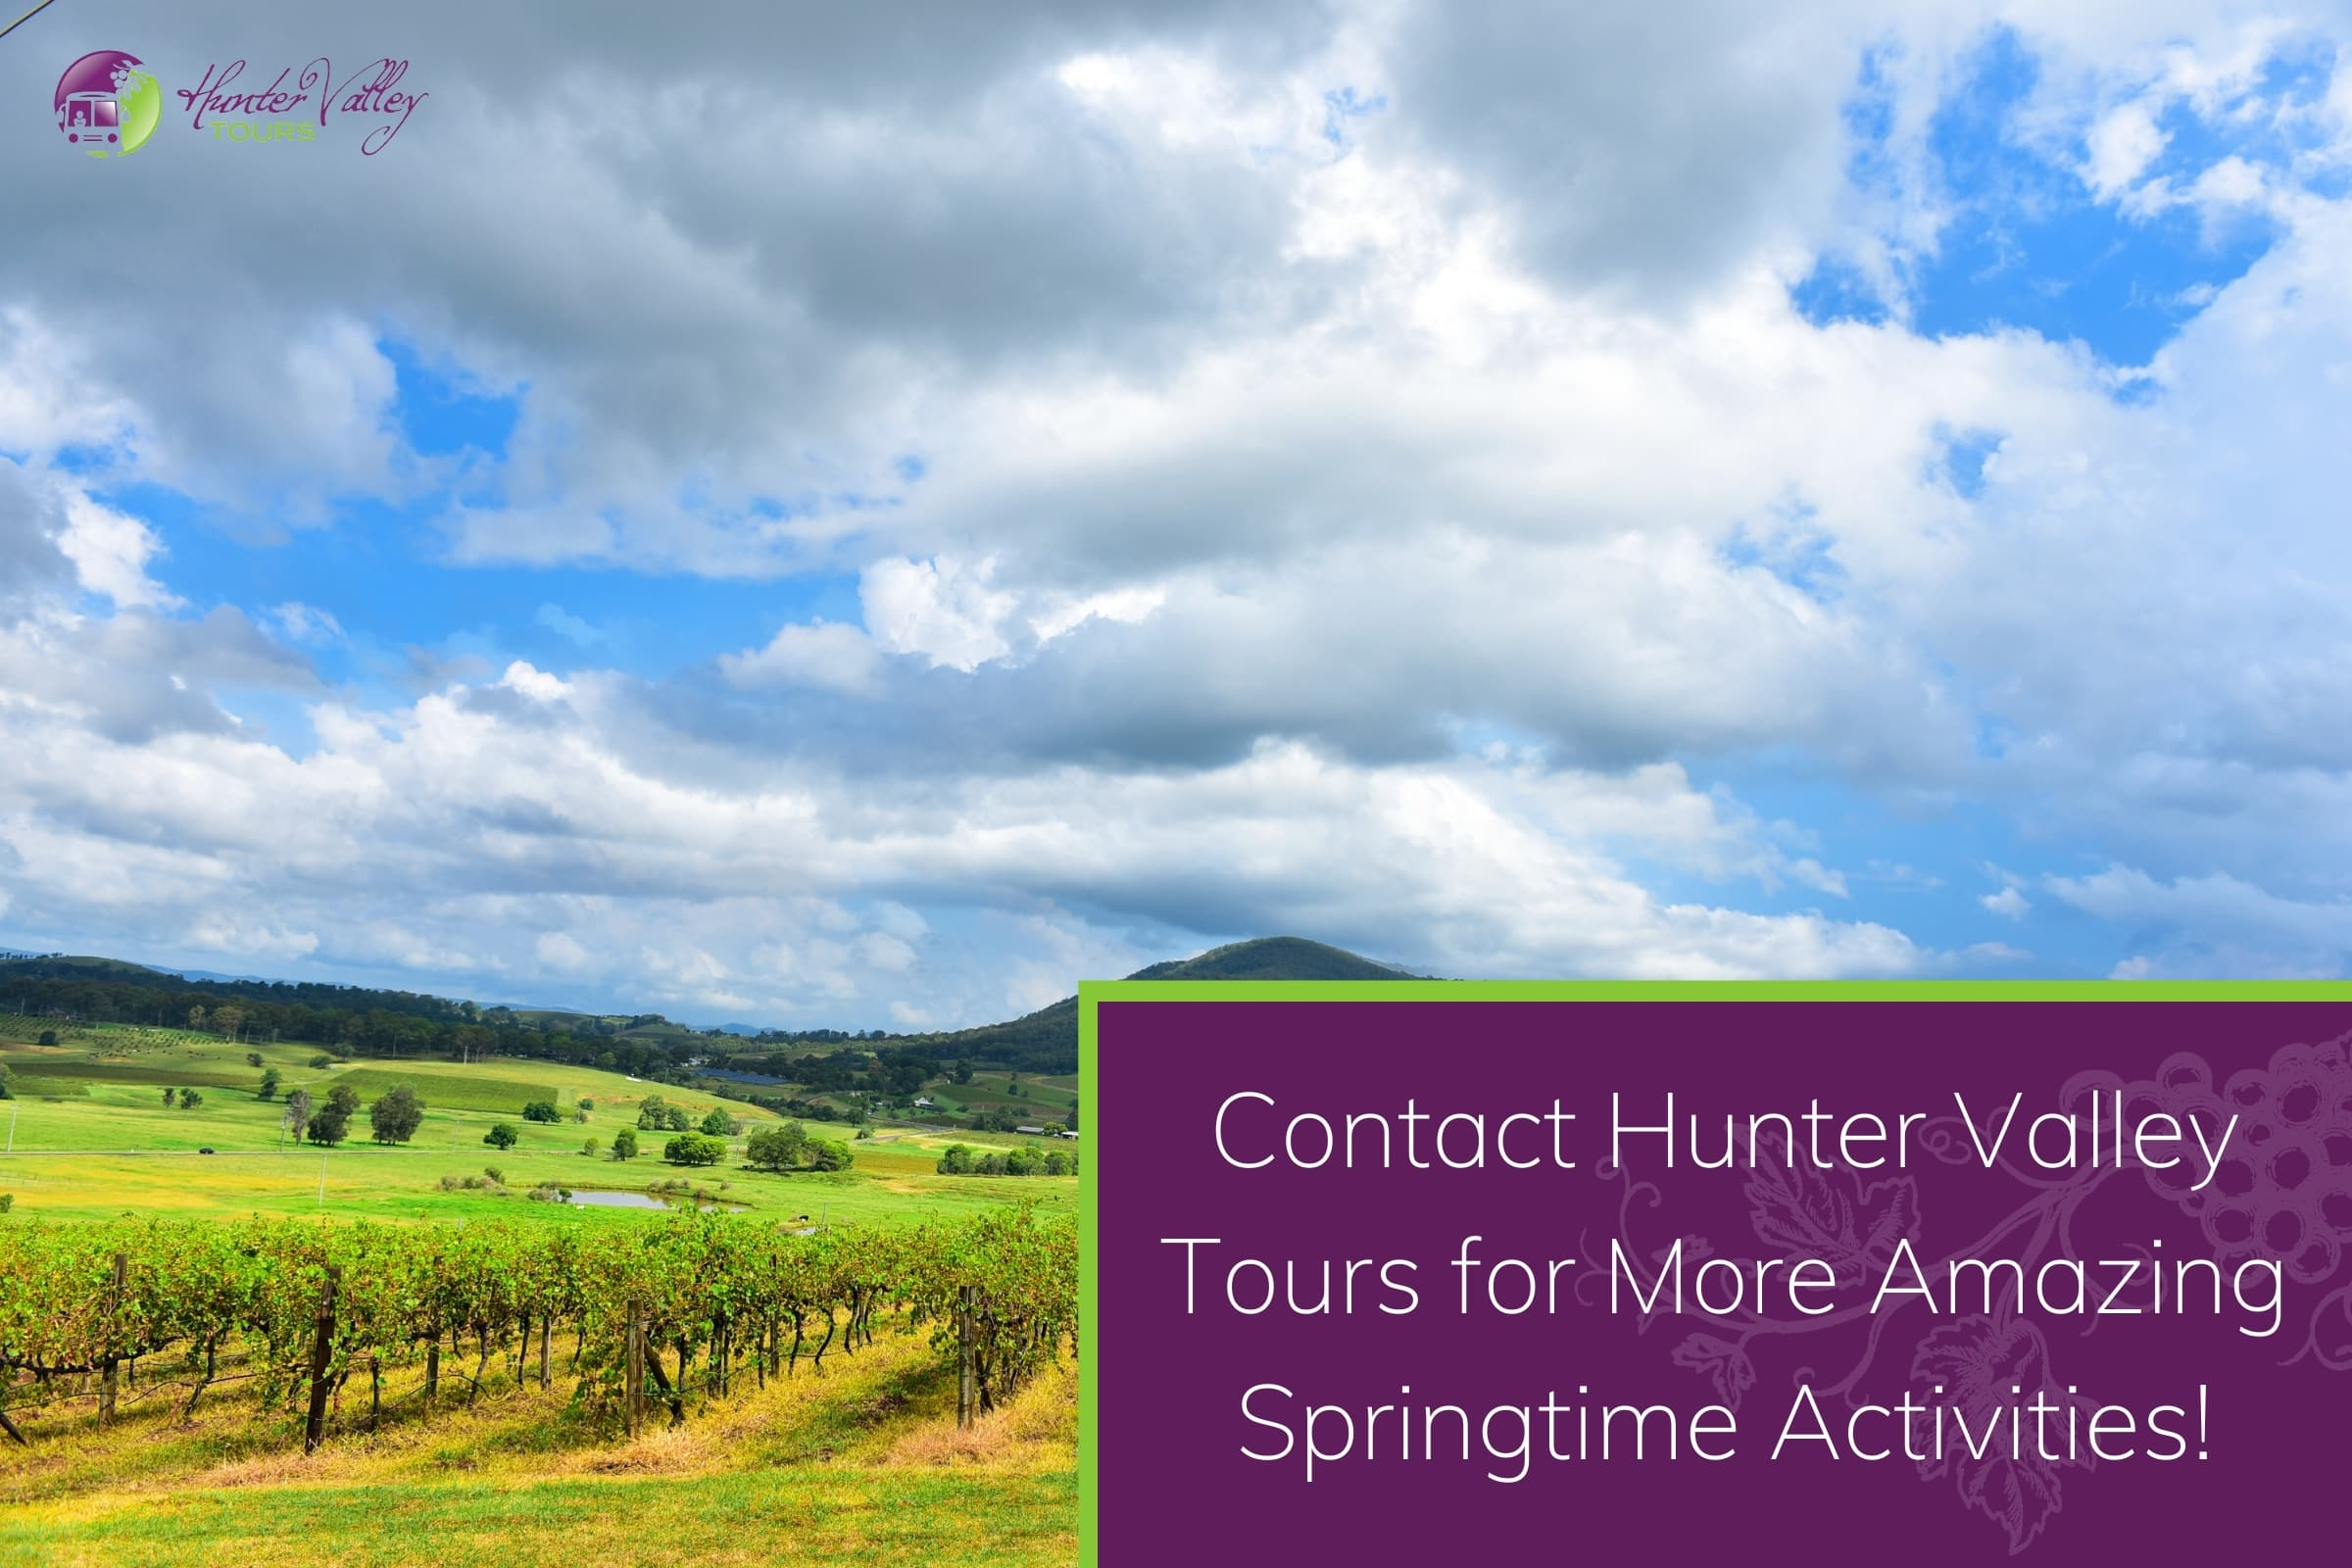 Contact Hunter Valley Tours for More Amazing Springtime Activities!